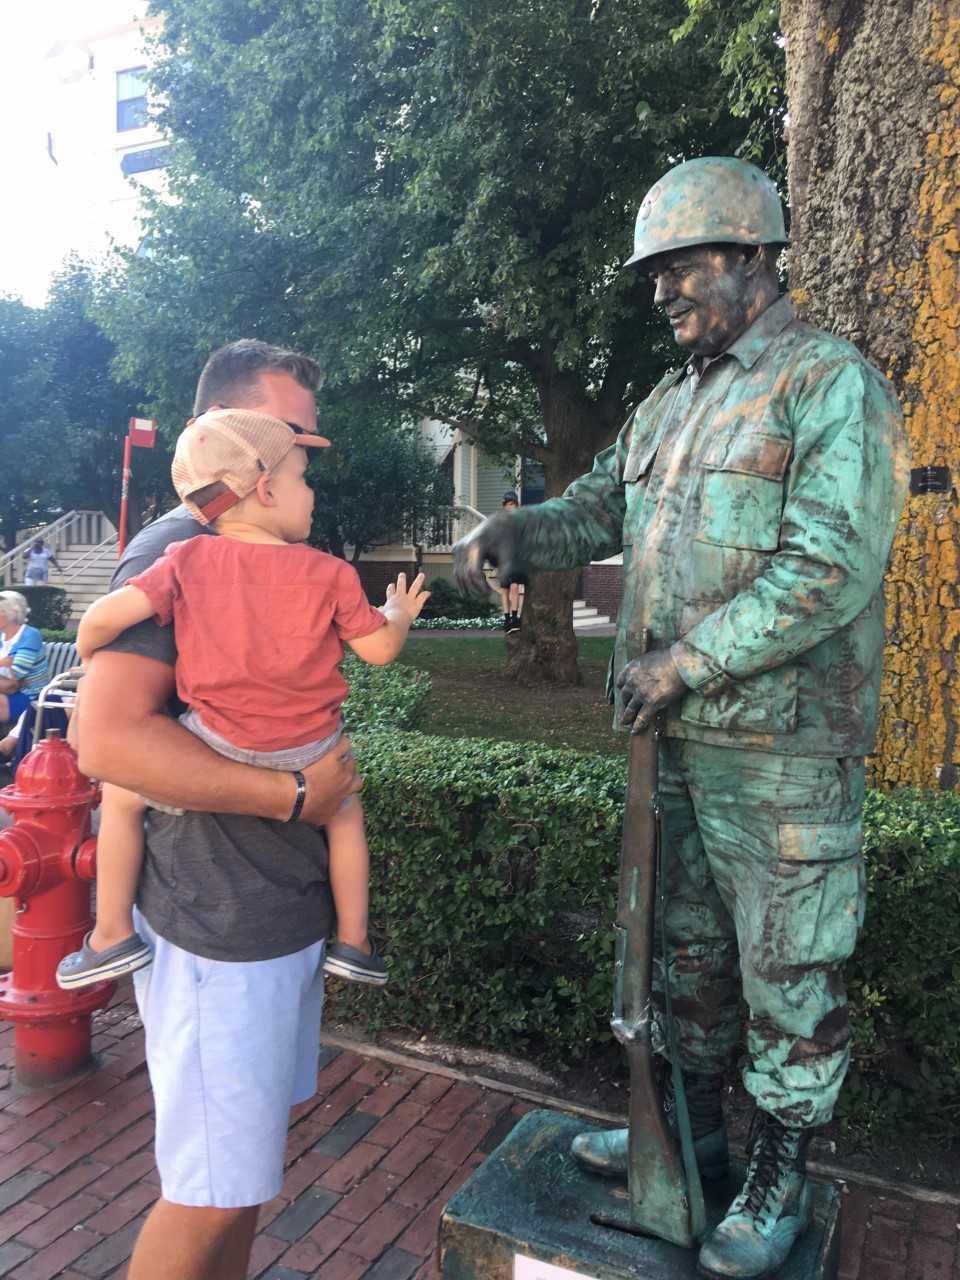 The Human Statue fist pumping with Jack. Read more about his  story here.